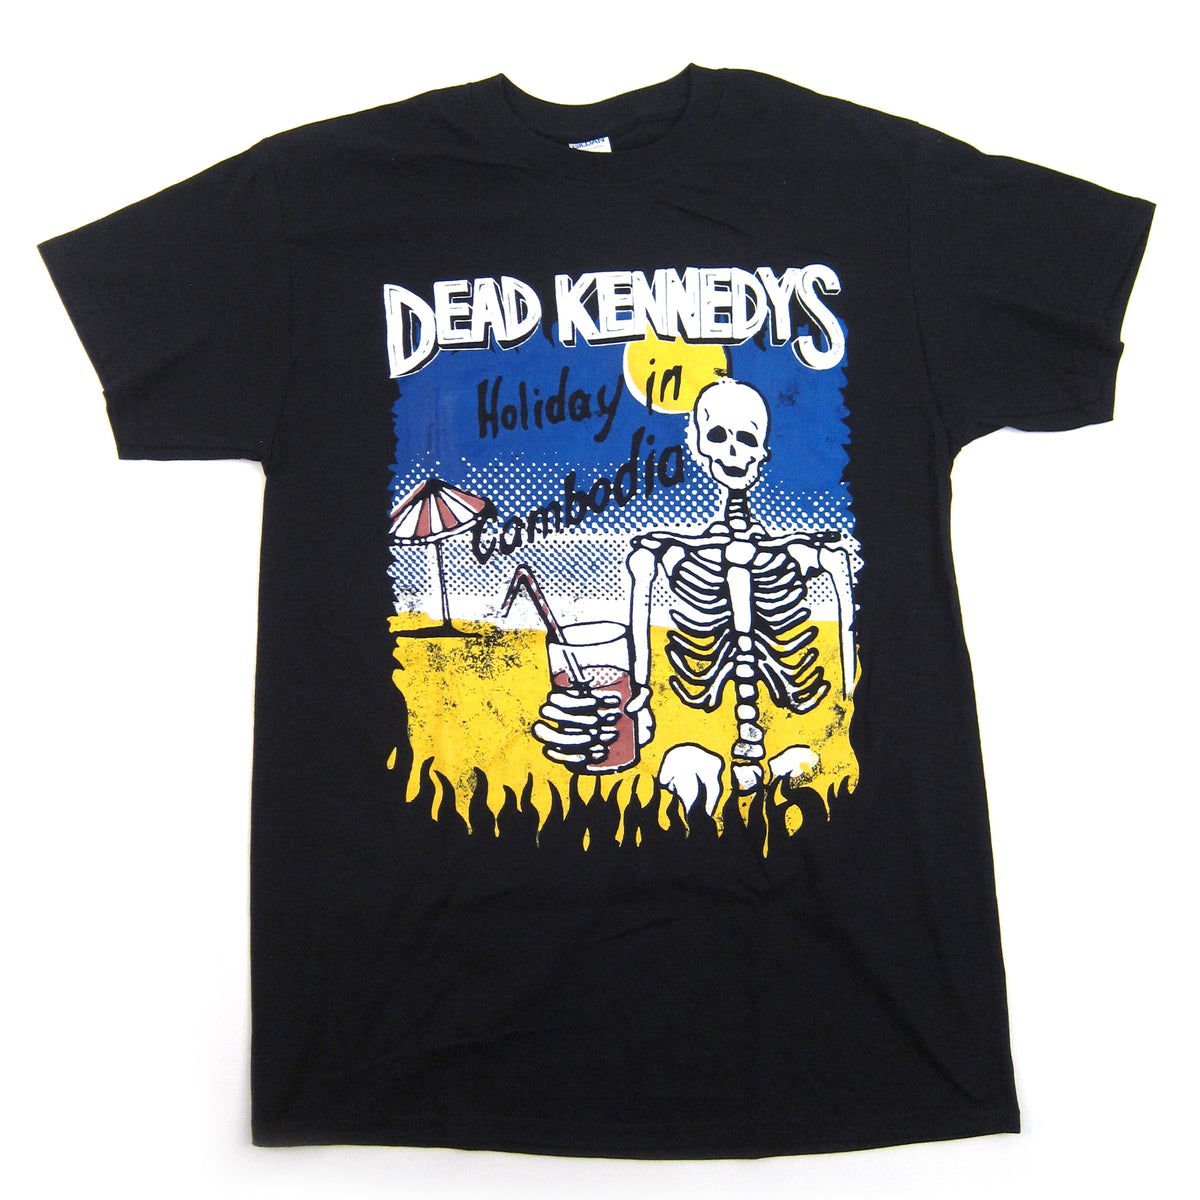 Dead Kennedys: Cambodian Skeleton Shirt - Black